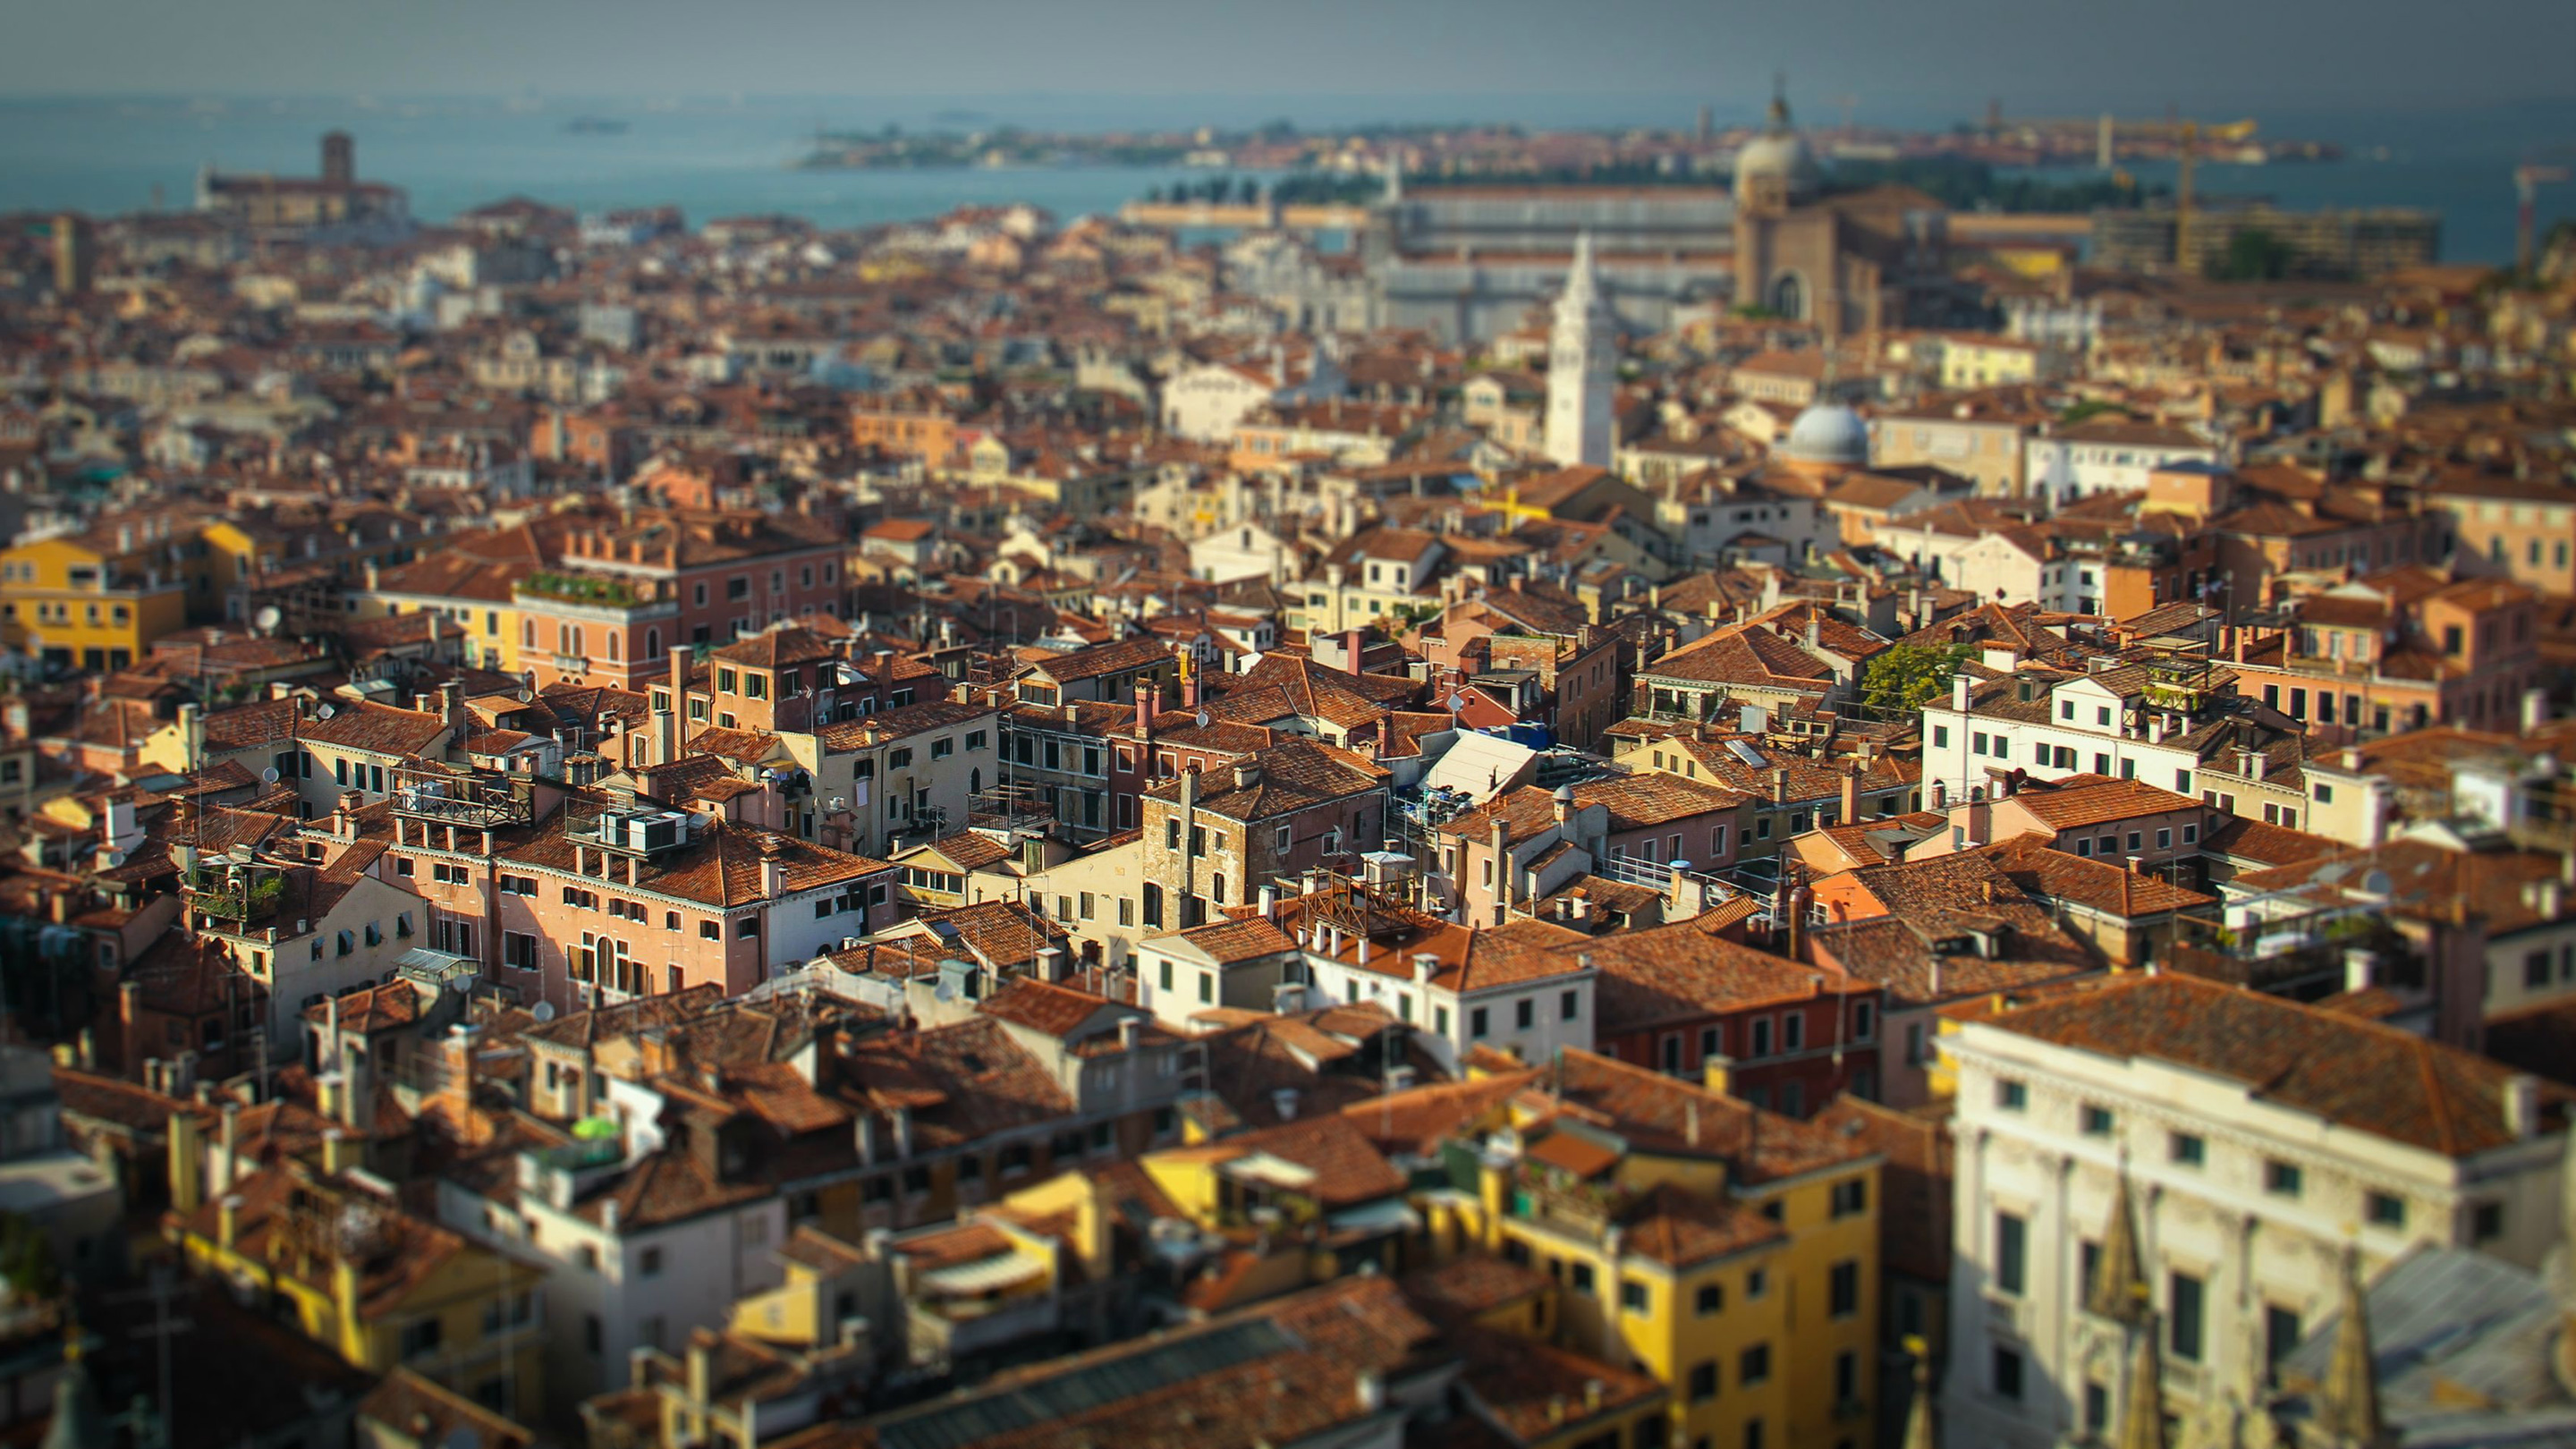 General 2880x1620 cityscape rooftops tilt shift Venice Italy old building miniature effect